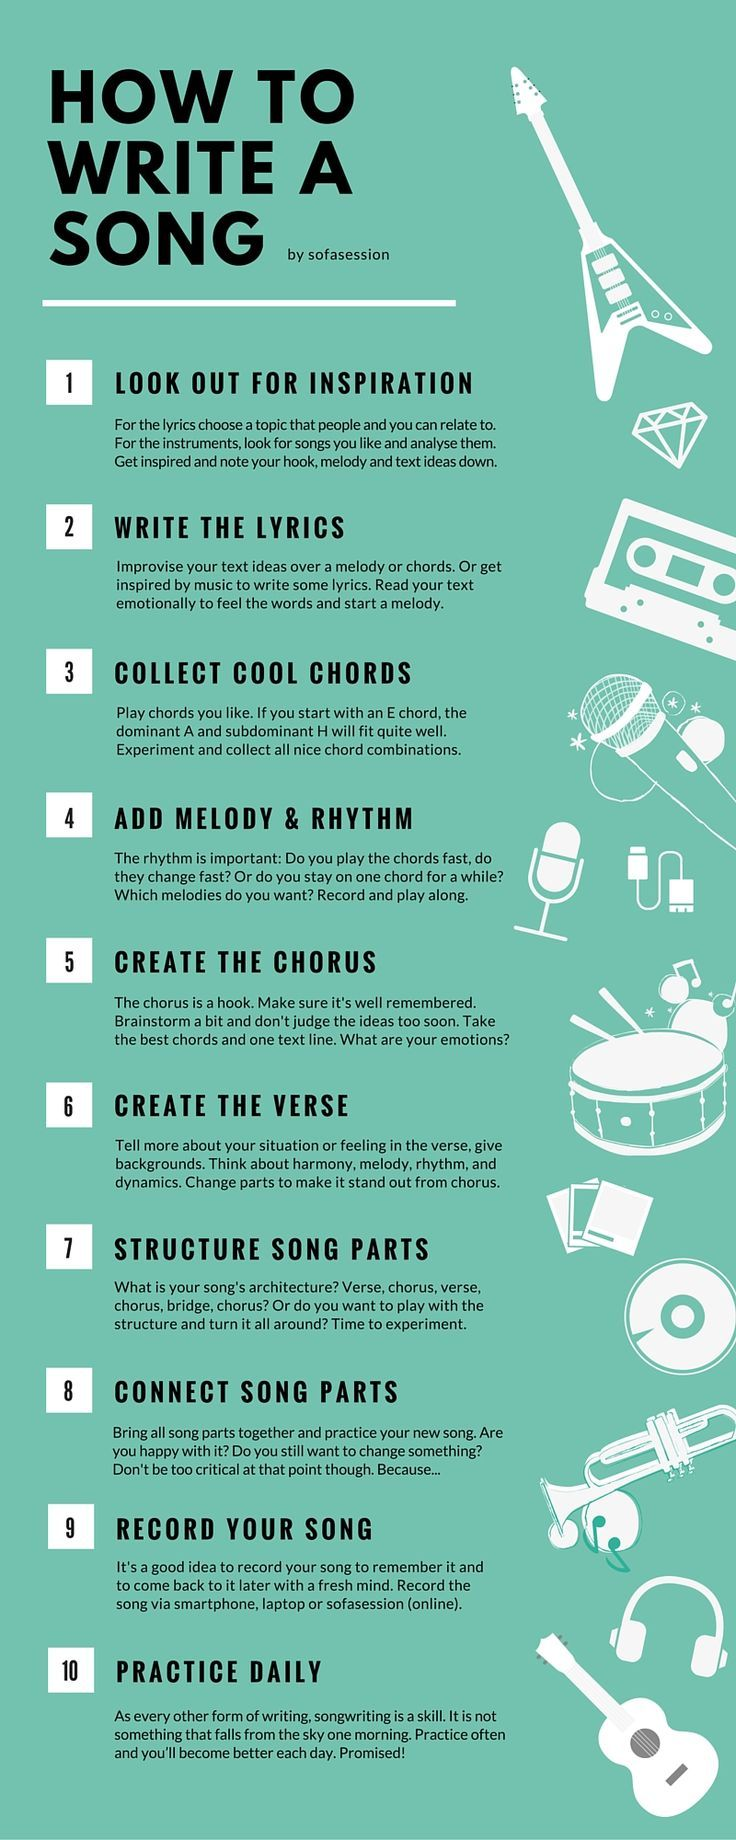 How to write a song in 10 steps as a beginner the